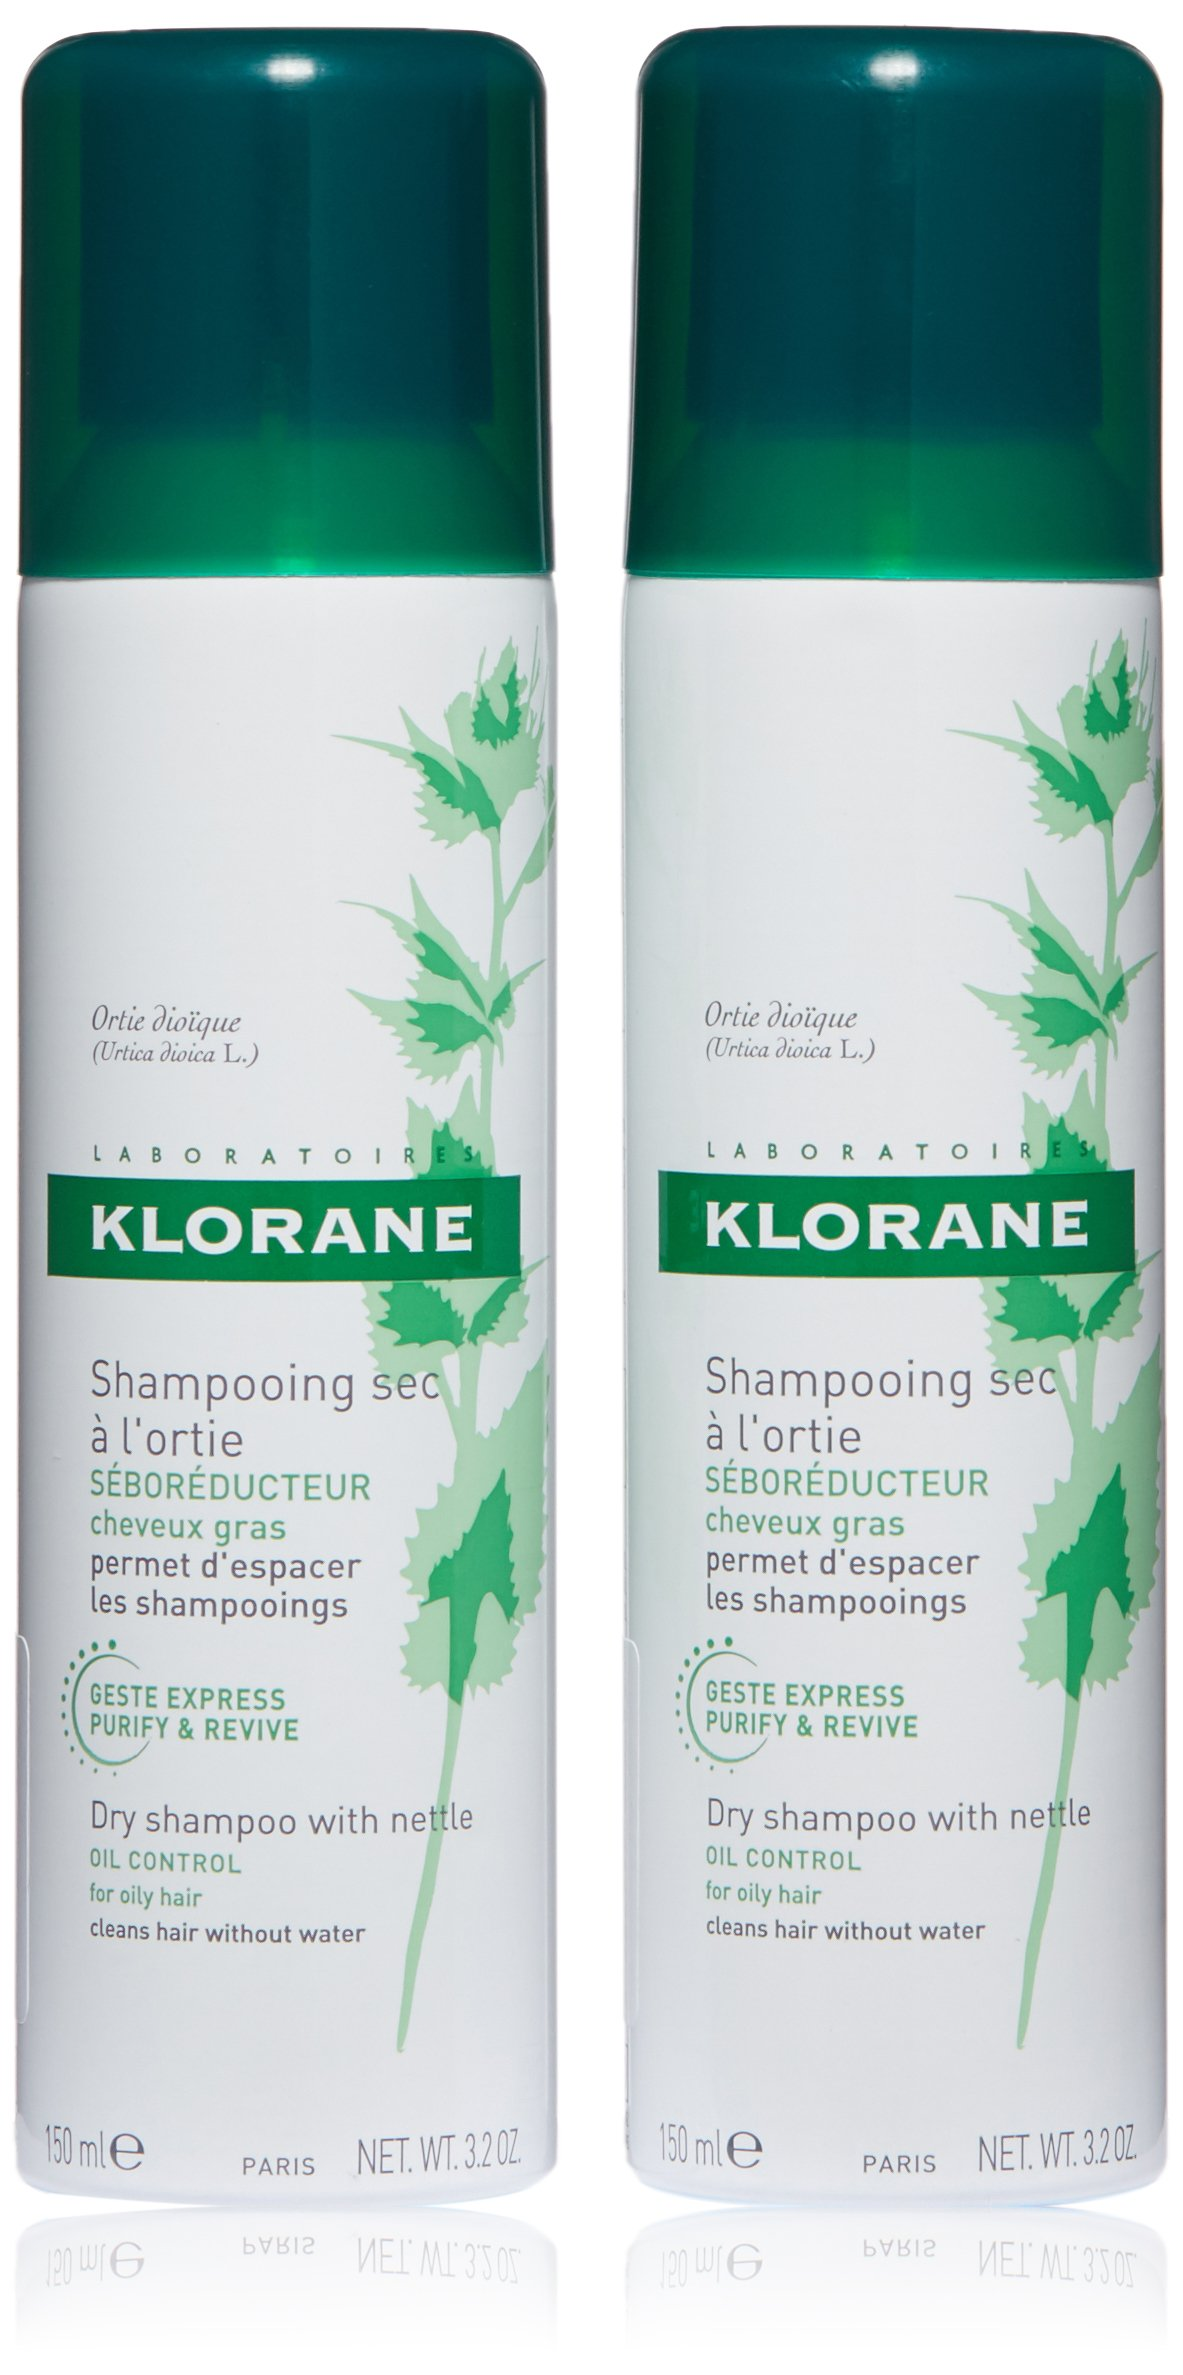 Klorane Dry Shampoo with Nettle for Oily Hair and Scalp, Regulates Oil Production, Paraben & Sulfate-Free, Pack of 2 by Klorane